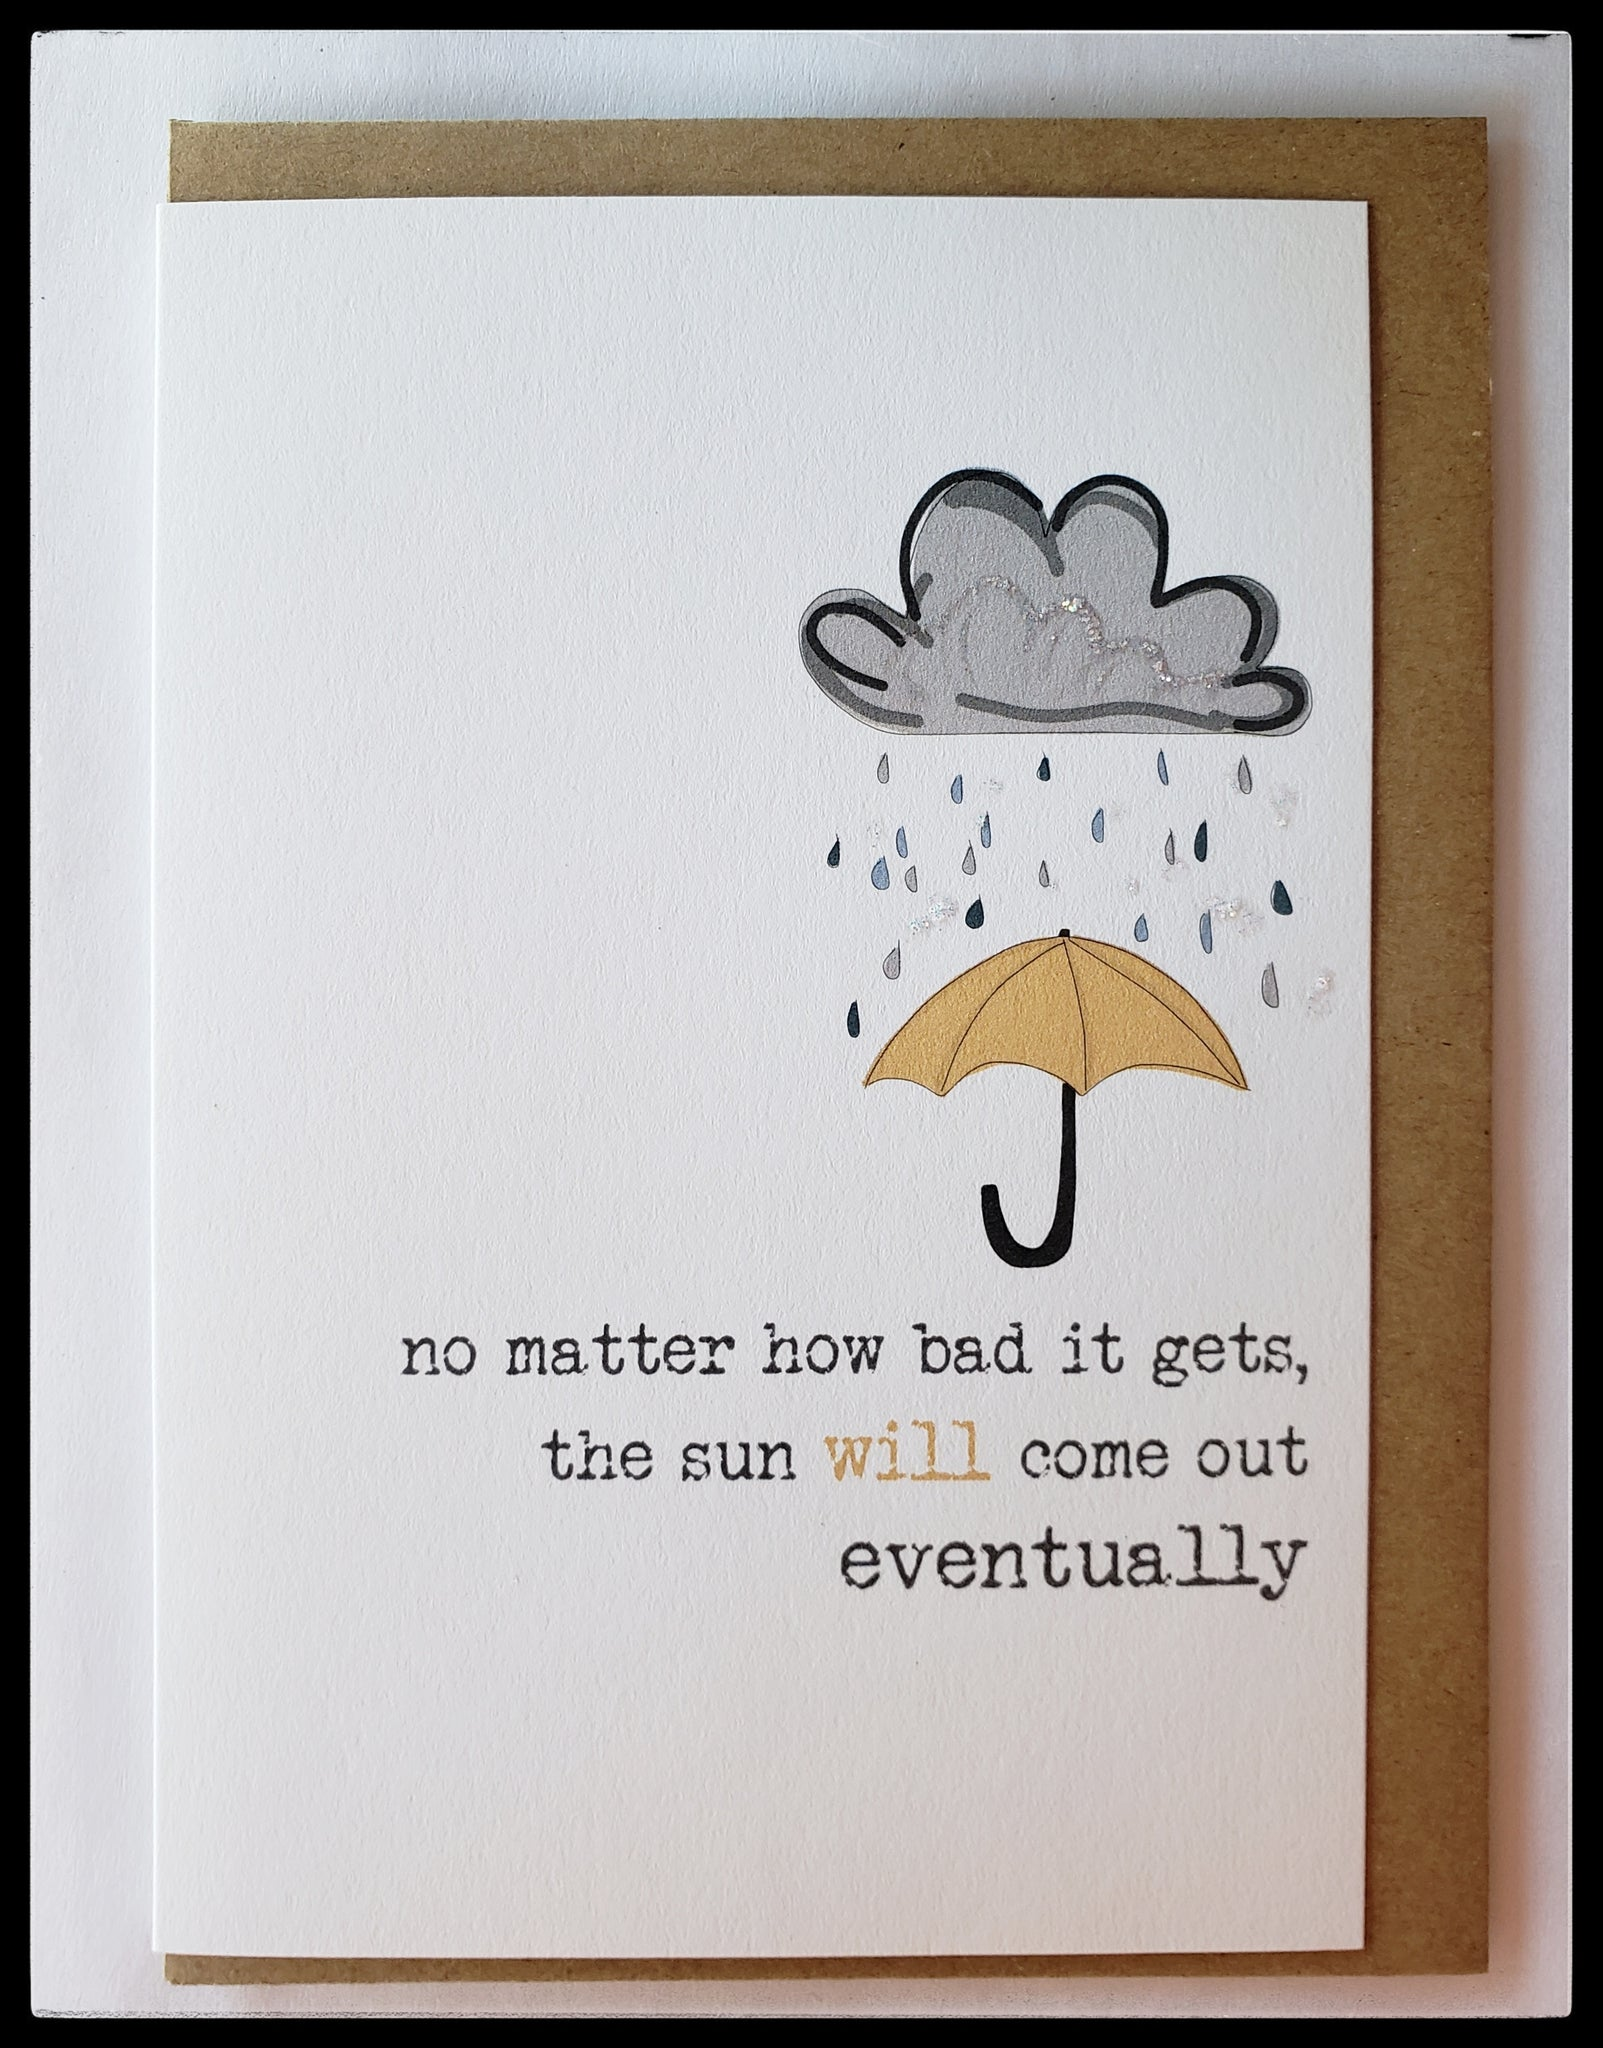 "Sympathy card 5"" x 6.5"" with envelope blank inside front image yellow umbrella under cloud and rain message on front no matter how bad it gets the sun will come out eventually ADA the gilded page Santa Fe"